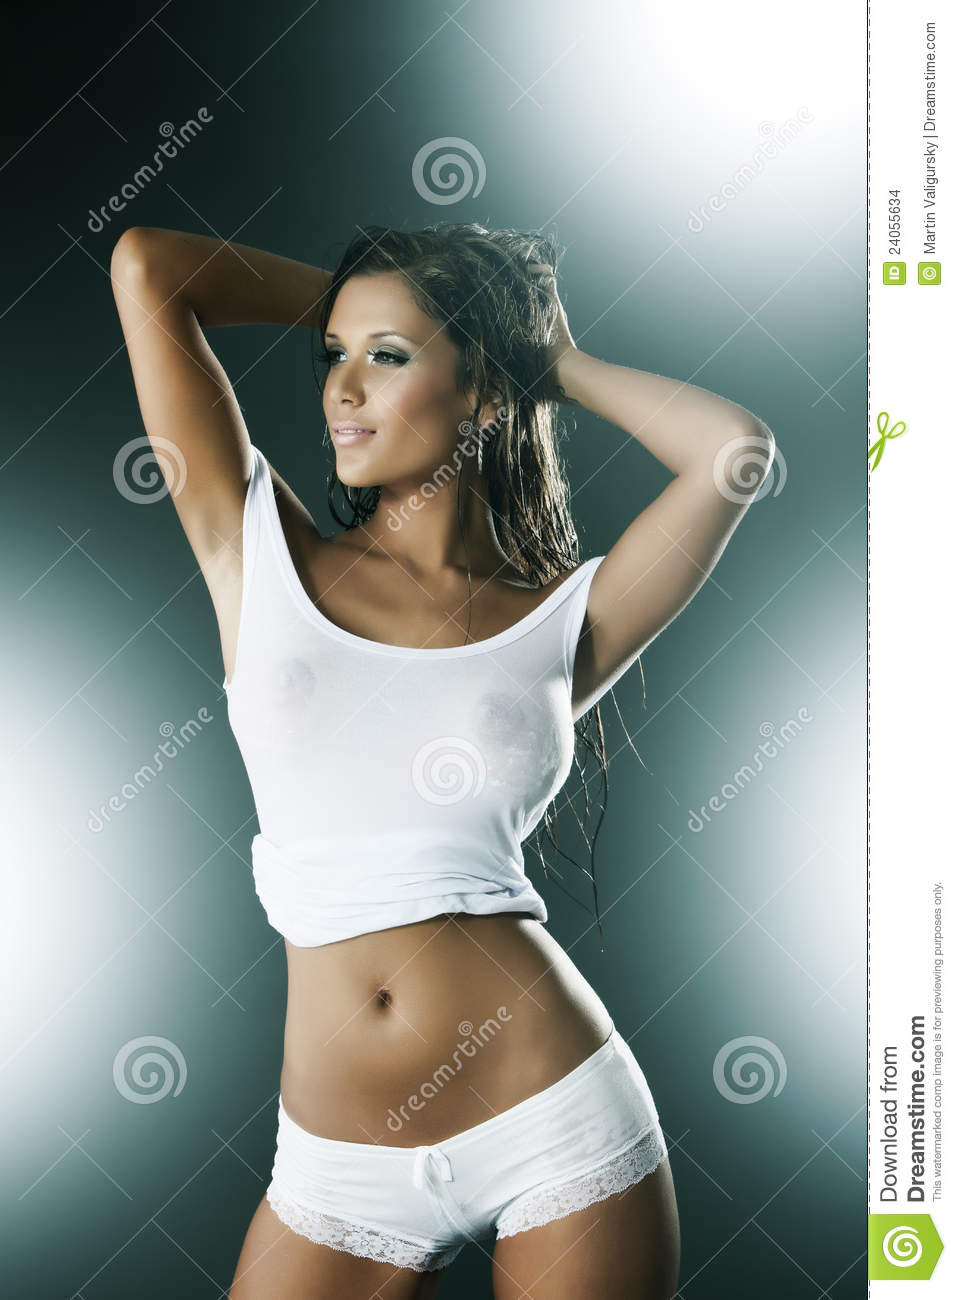 wet woman wearing white tank top and panties stock photo - image of